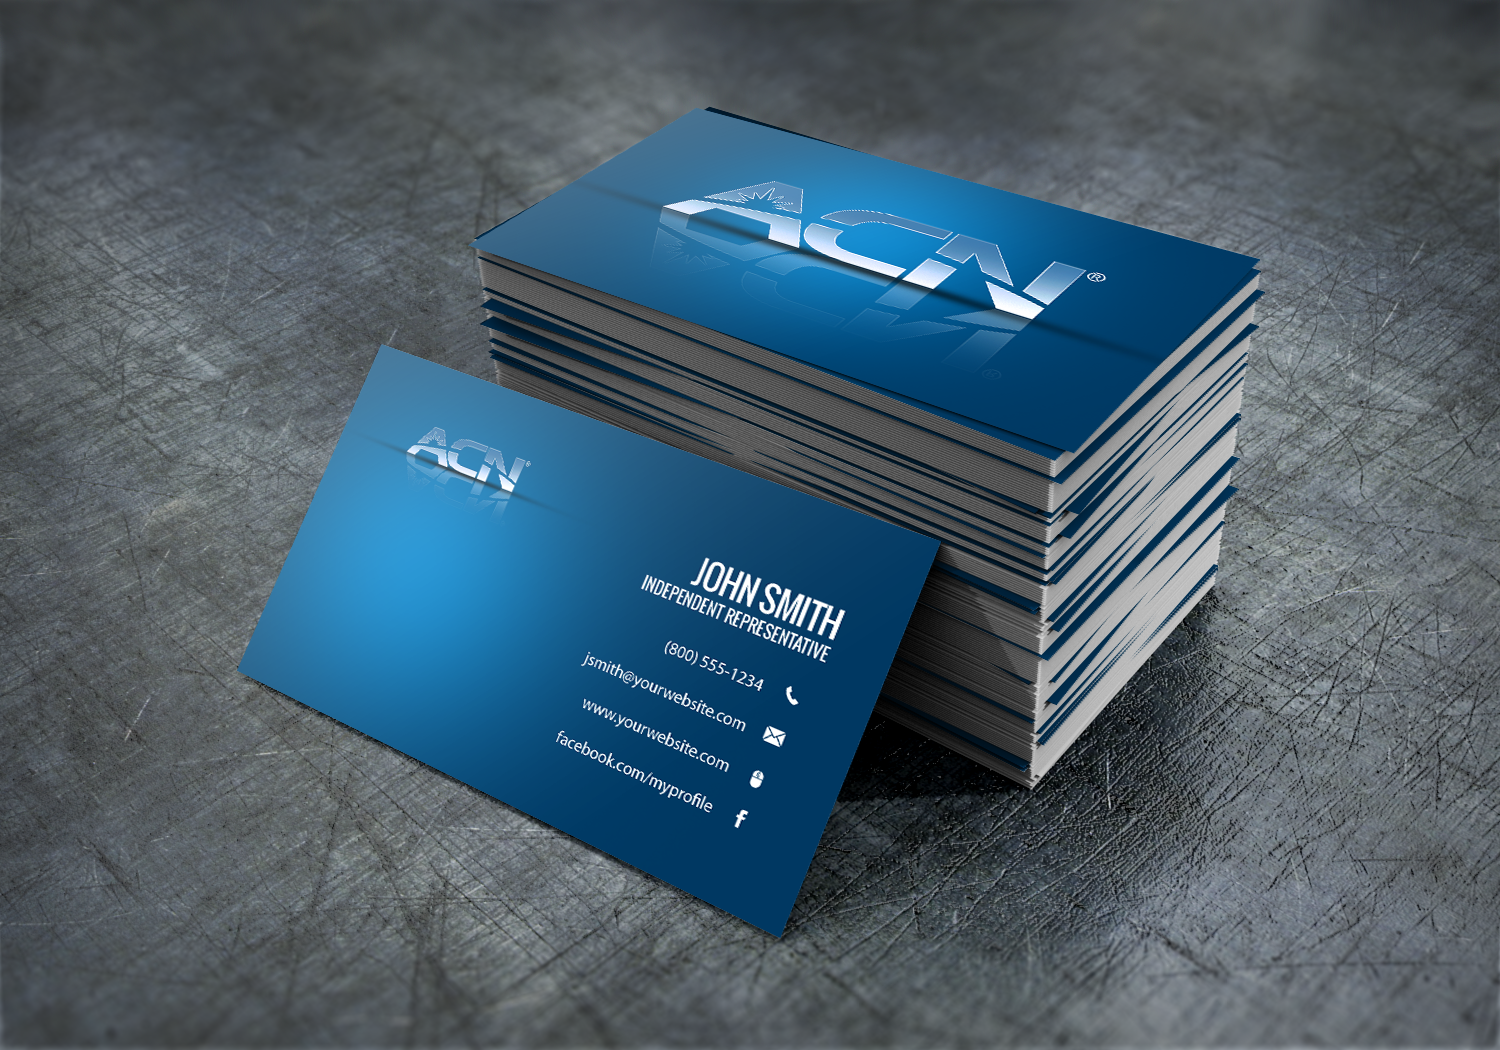 Acn Business Owners It S Time For A New Business Card Mlm Acn Print Paper Graphicdesign Bus Printing Business Cards Free Business Cards Business Cards